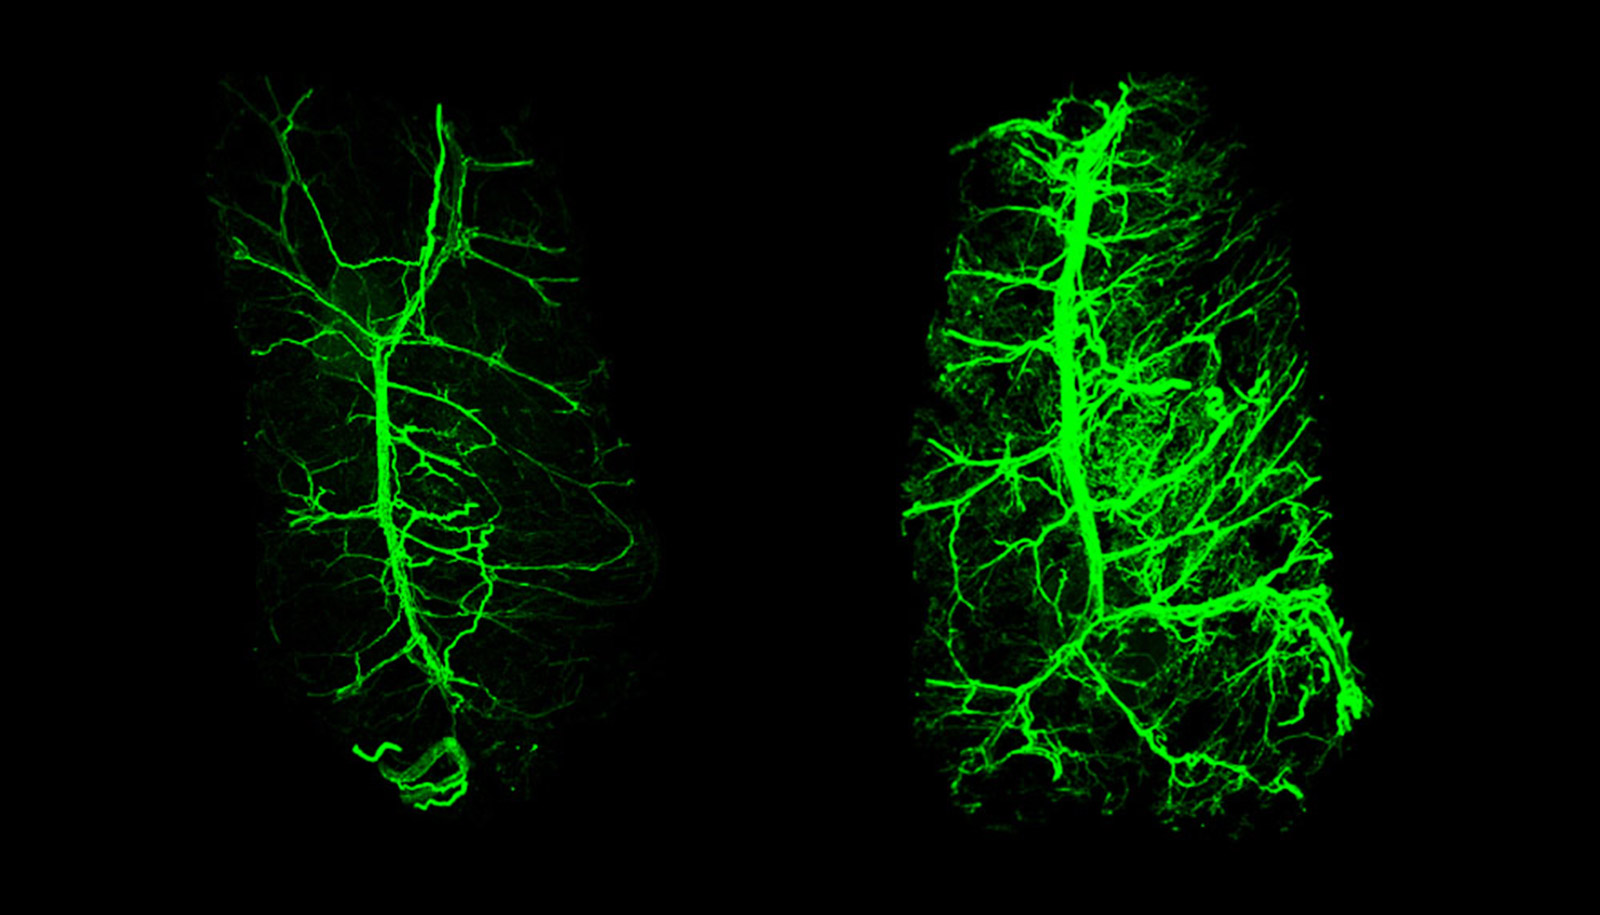 Weight loss diet Fat-burning neurons in mice grow with leptin thumbnail